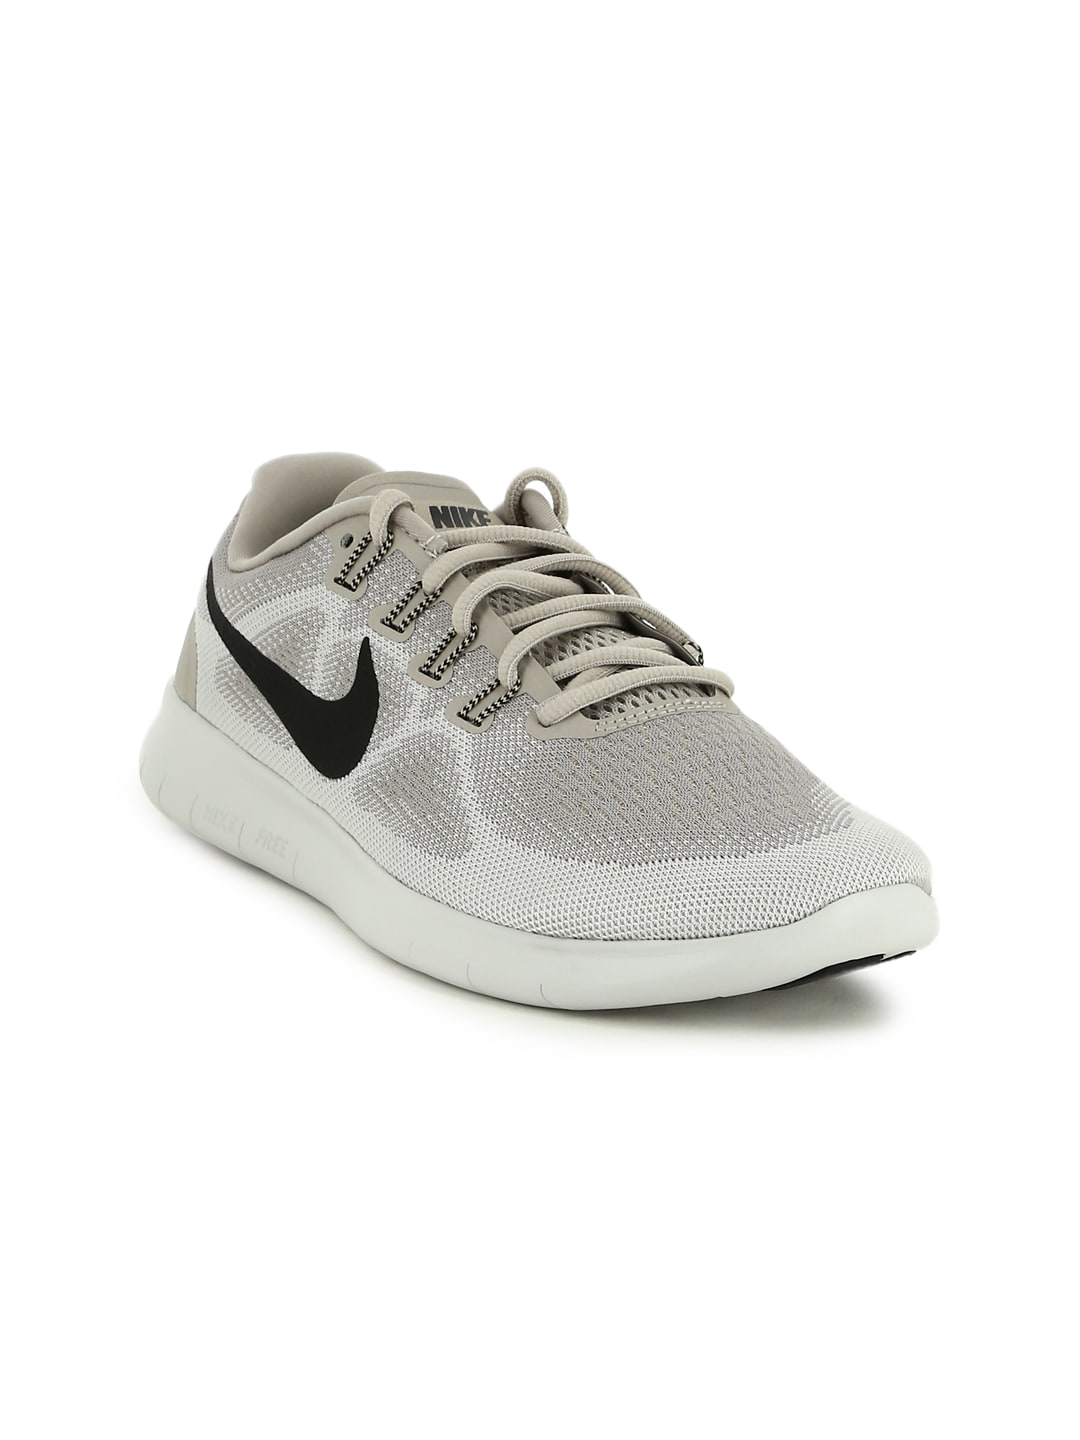 At Nike Qpwtaxbe Shoe Online Myntra Sport Best Price In Shoes Buy W0CqntgzF